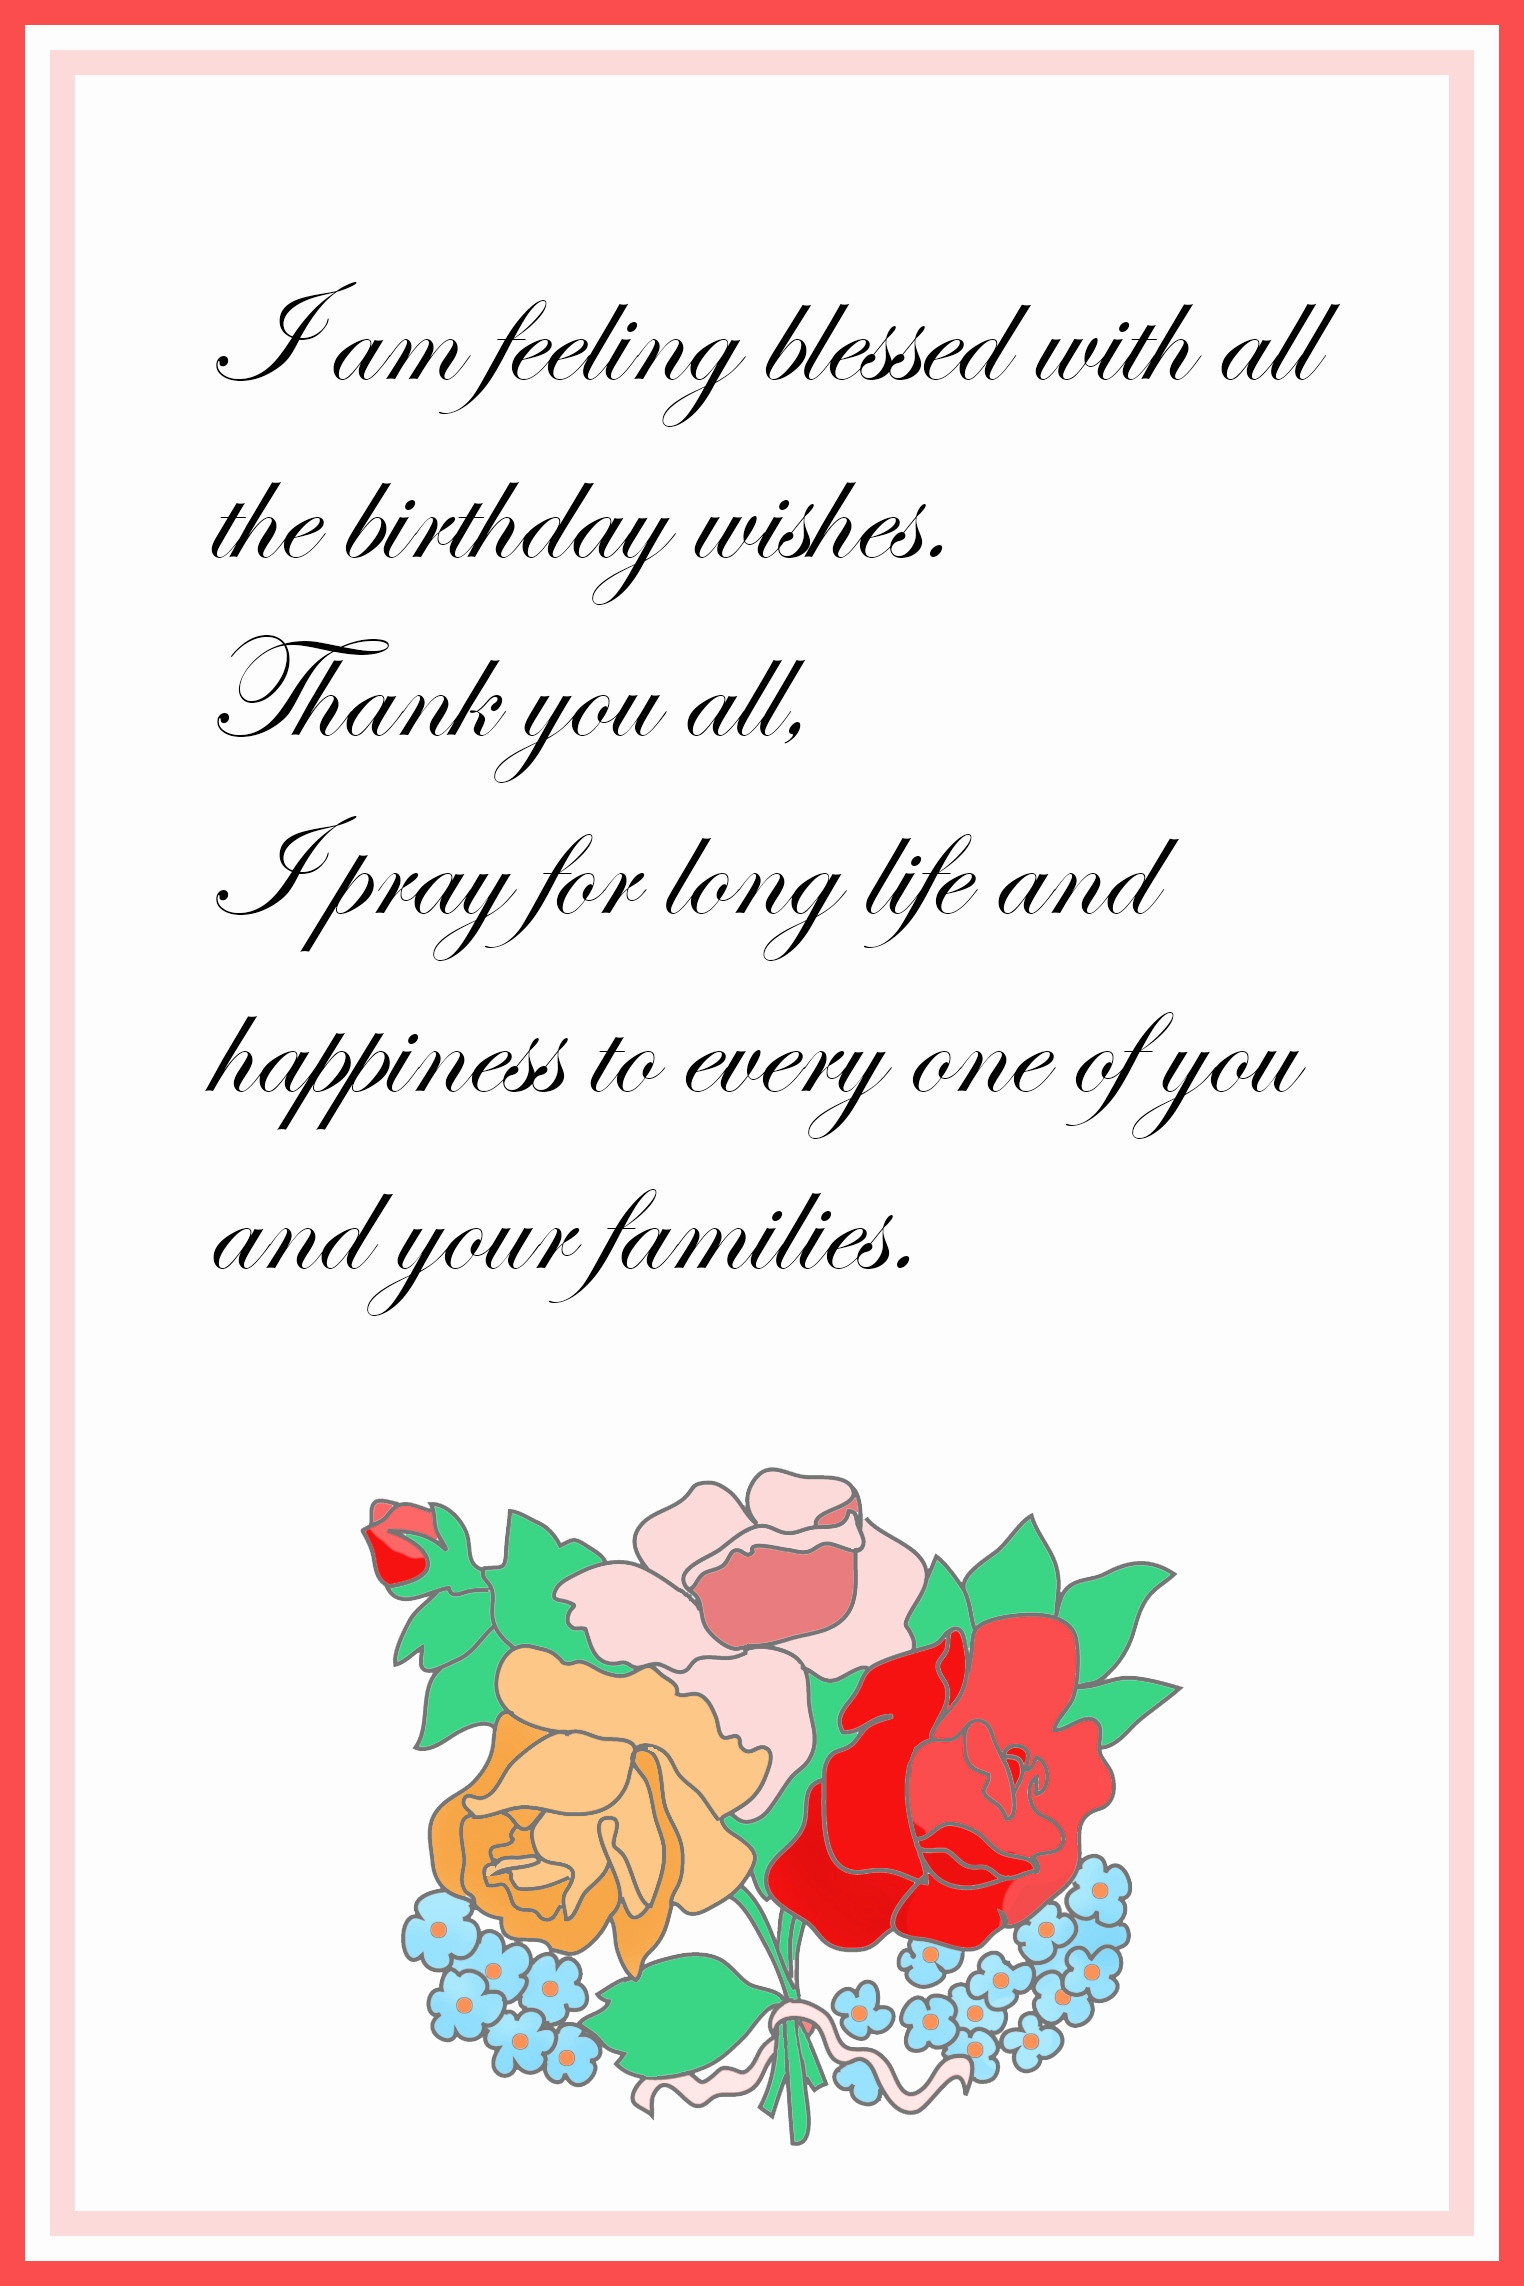 birthday wishes words ; birthday-cards-with-wishes-words-fresh-printable-thank-you-cards-of-birthday-cards-with-wishes-words